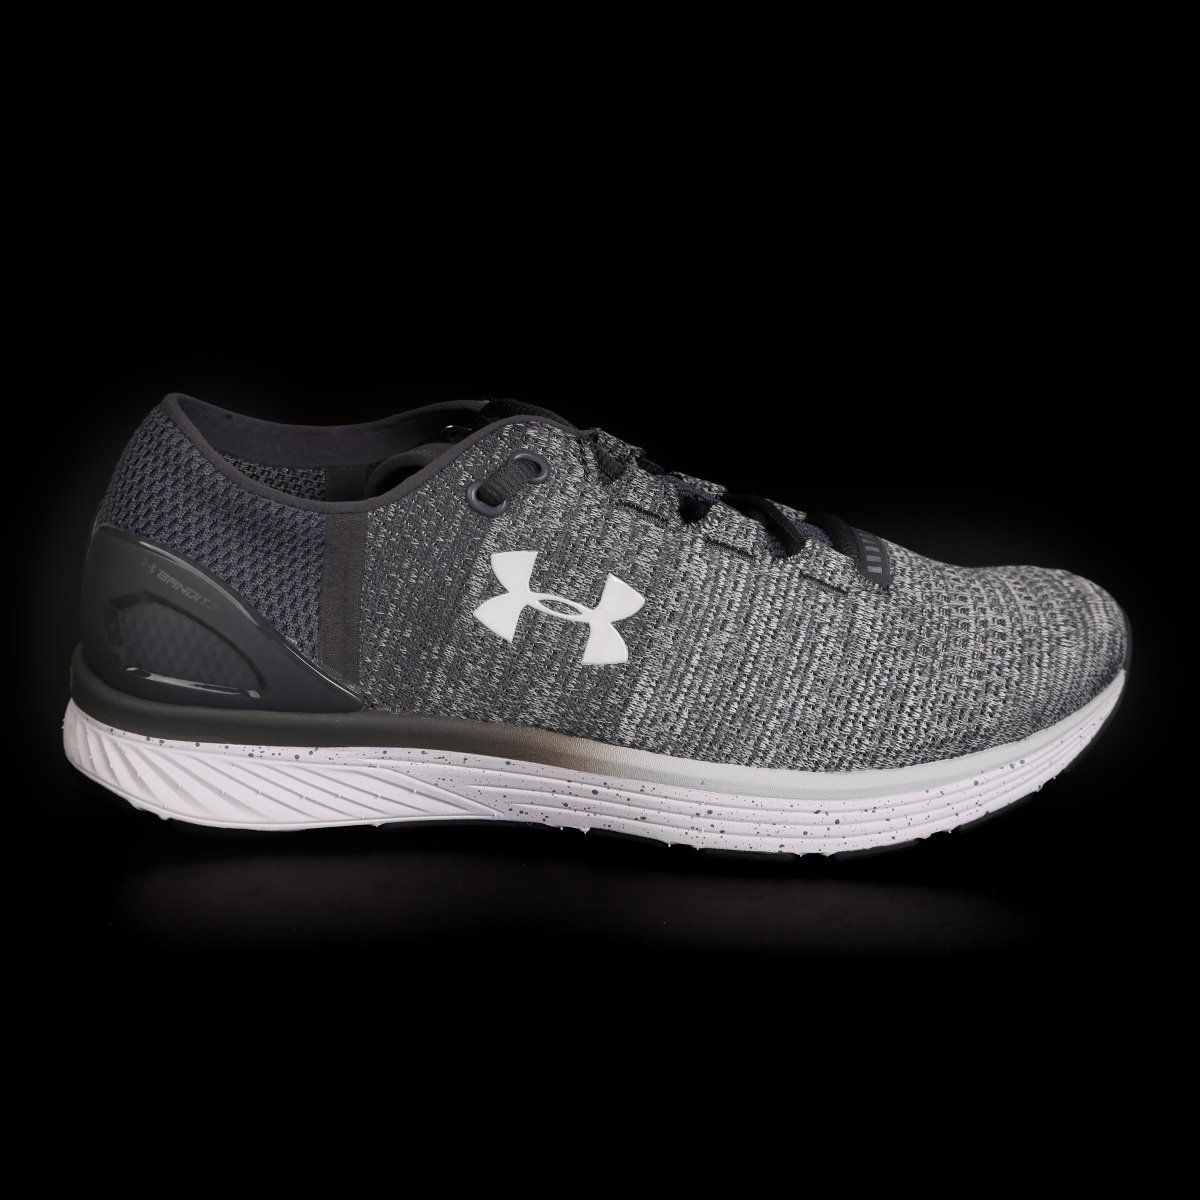 6c2ed8a405 Tênis Under Armour Charged Bandit 3 Masculino - Cinza e Branco ...